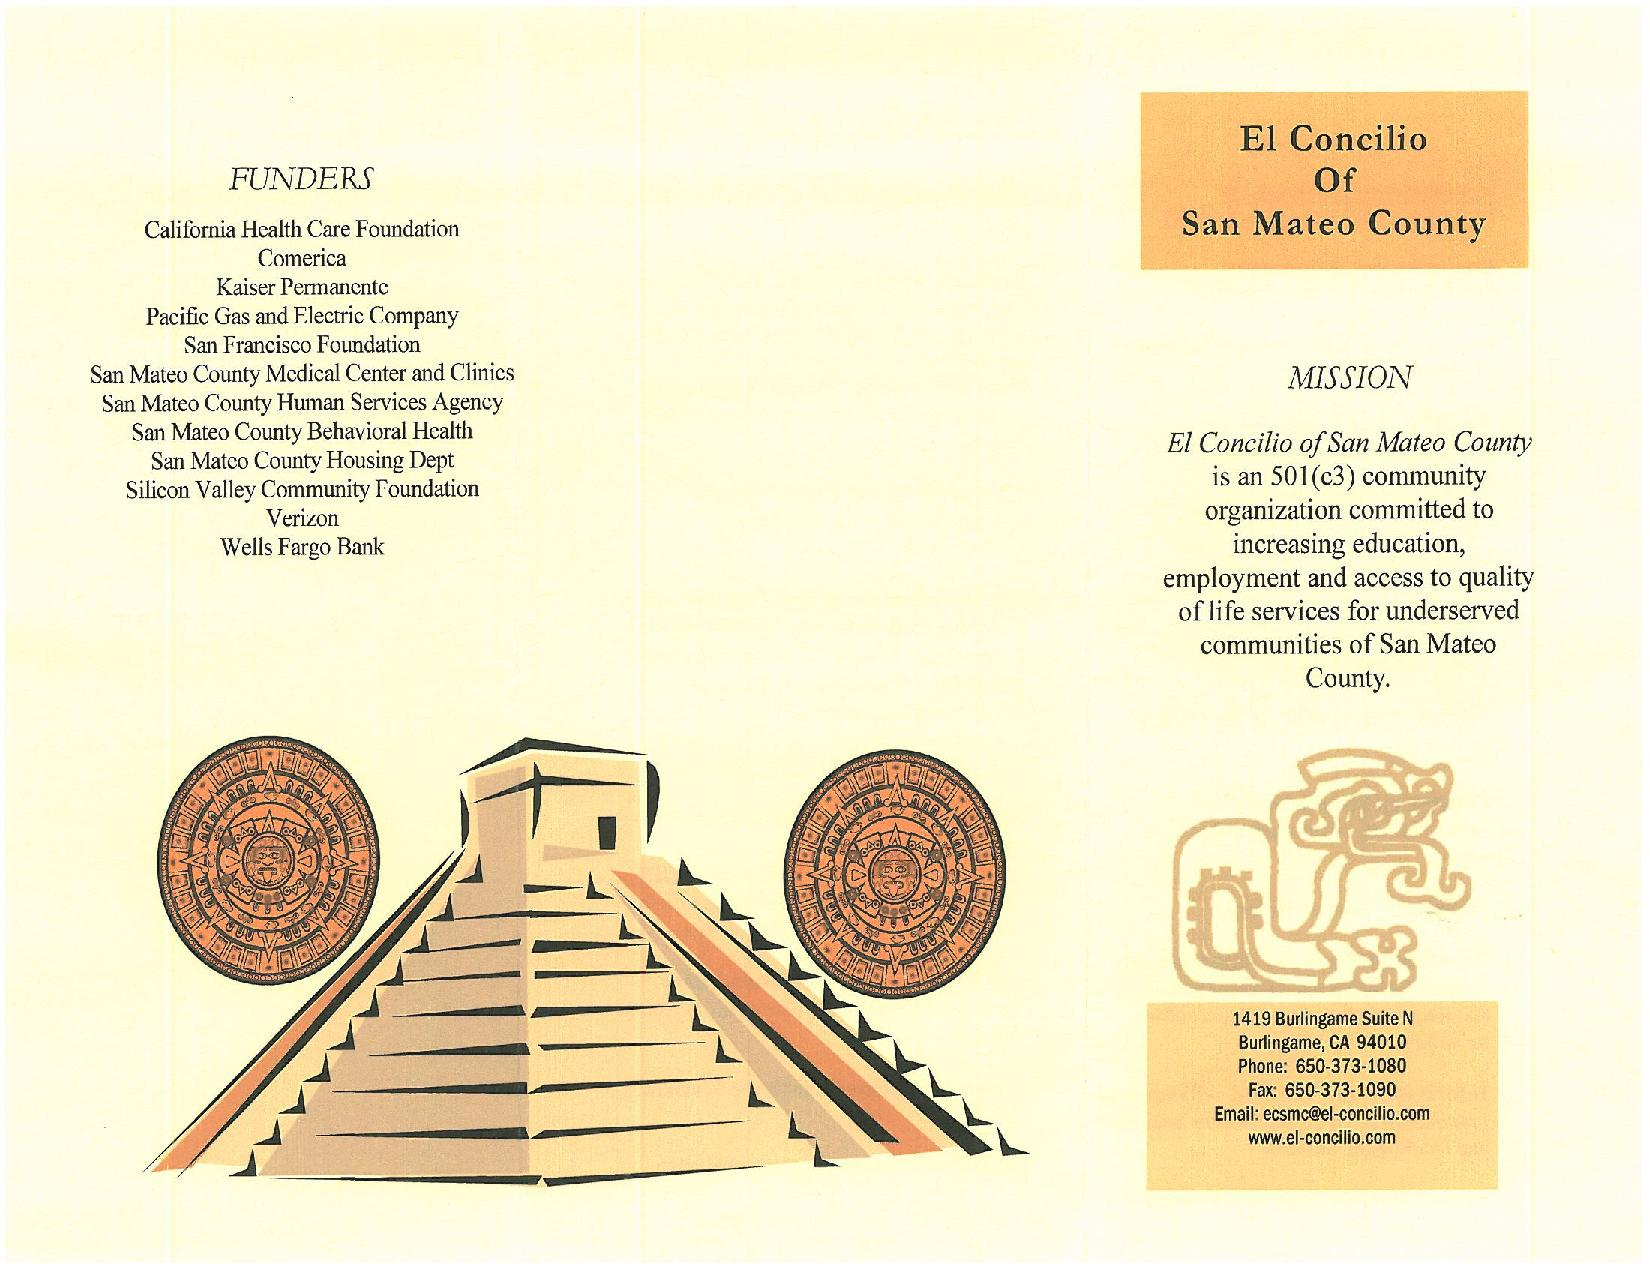 El Concilio Home Repair Program Plus Other Resources For Low-Income Families